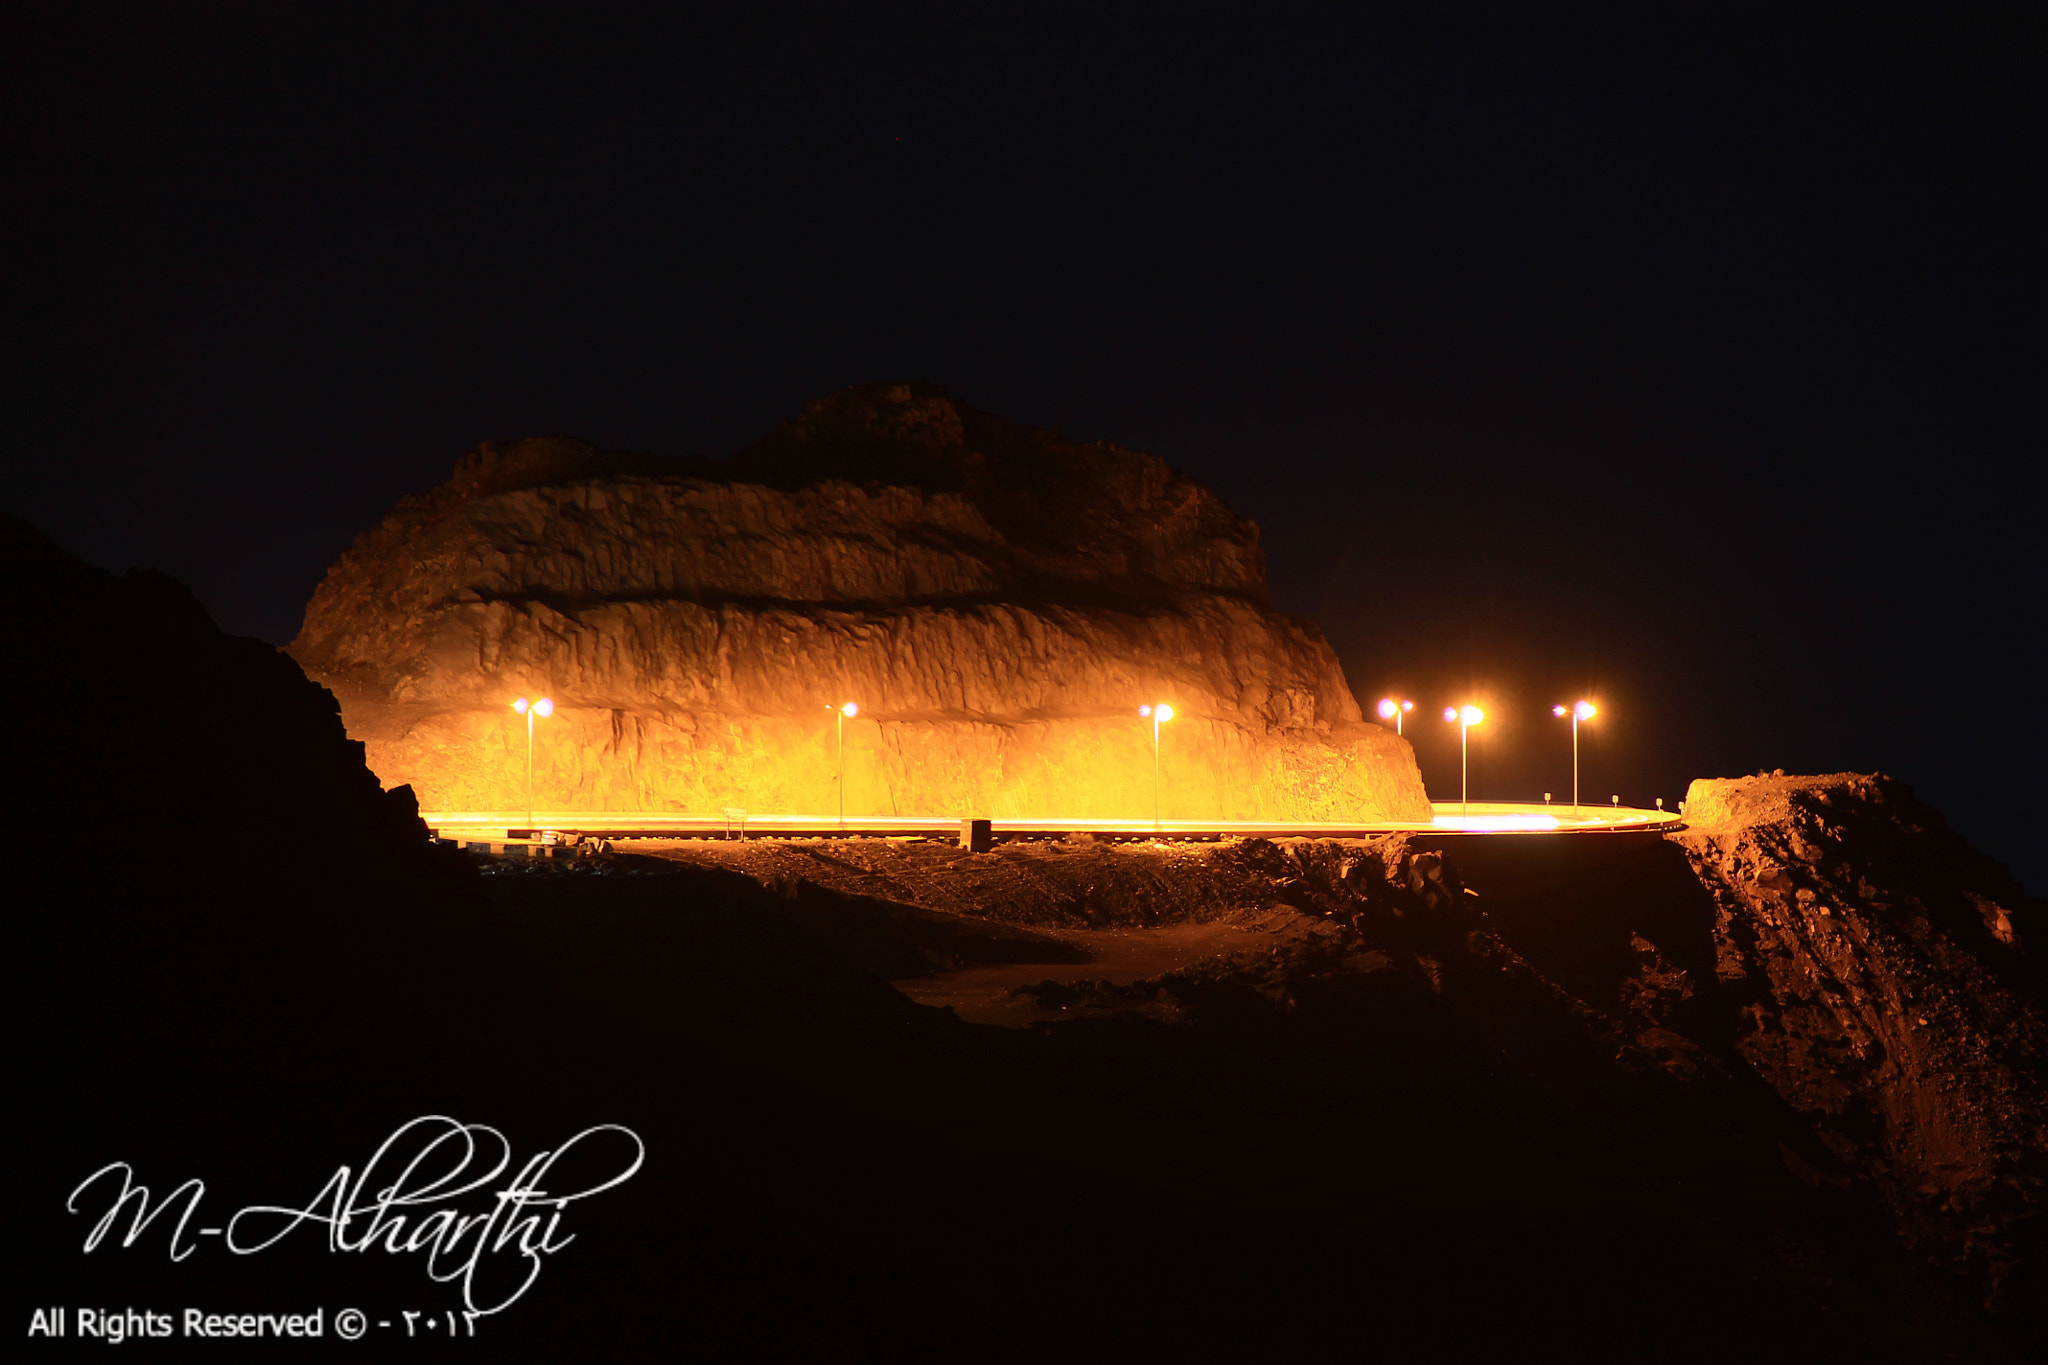 Photograph Lighting way .. by Mohammed Al-harthi on 500px